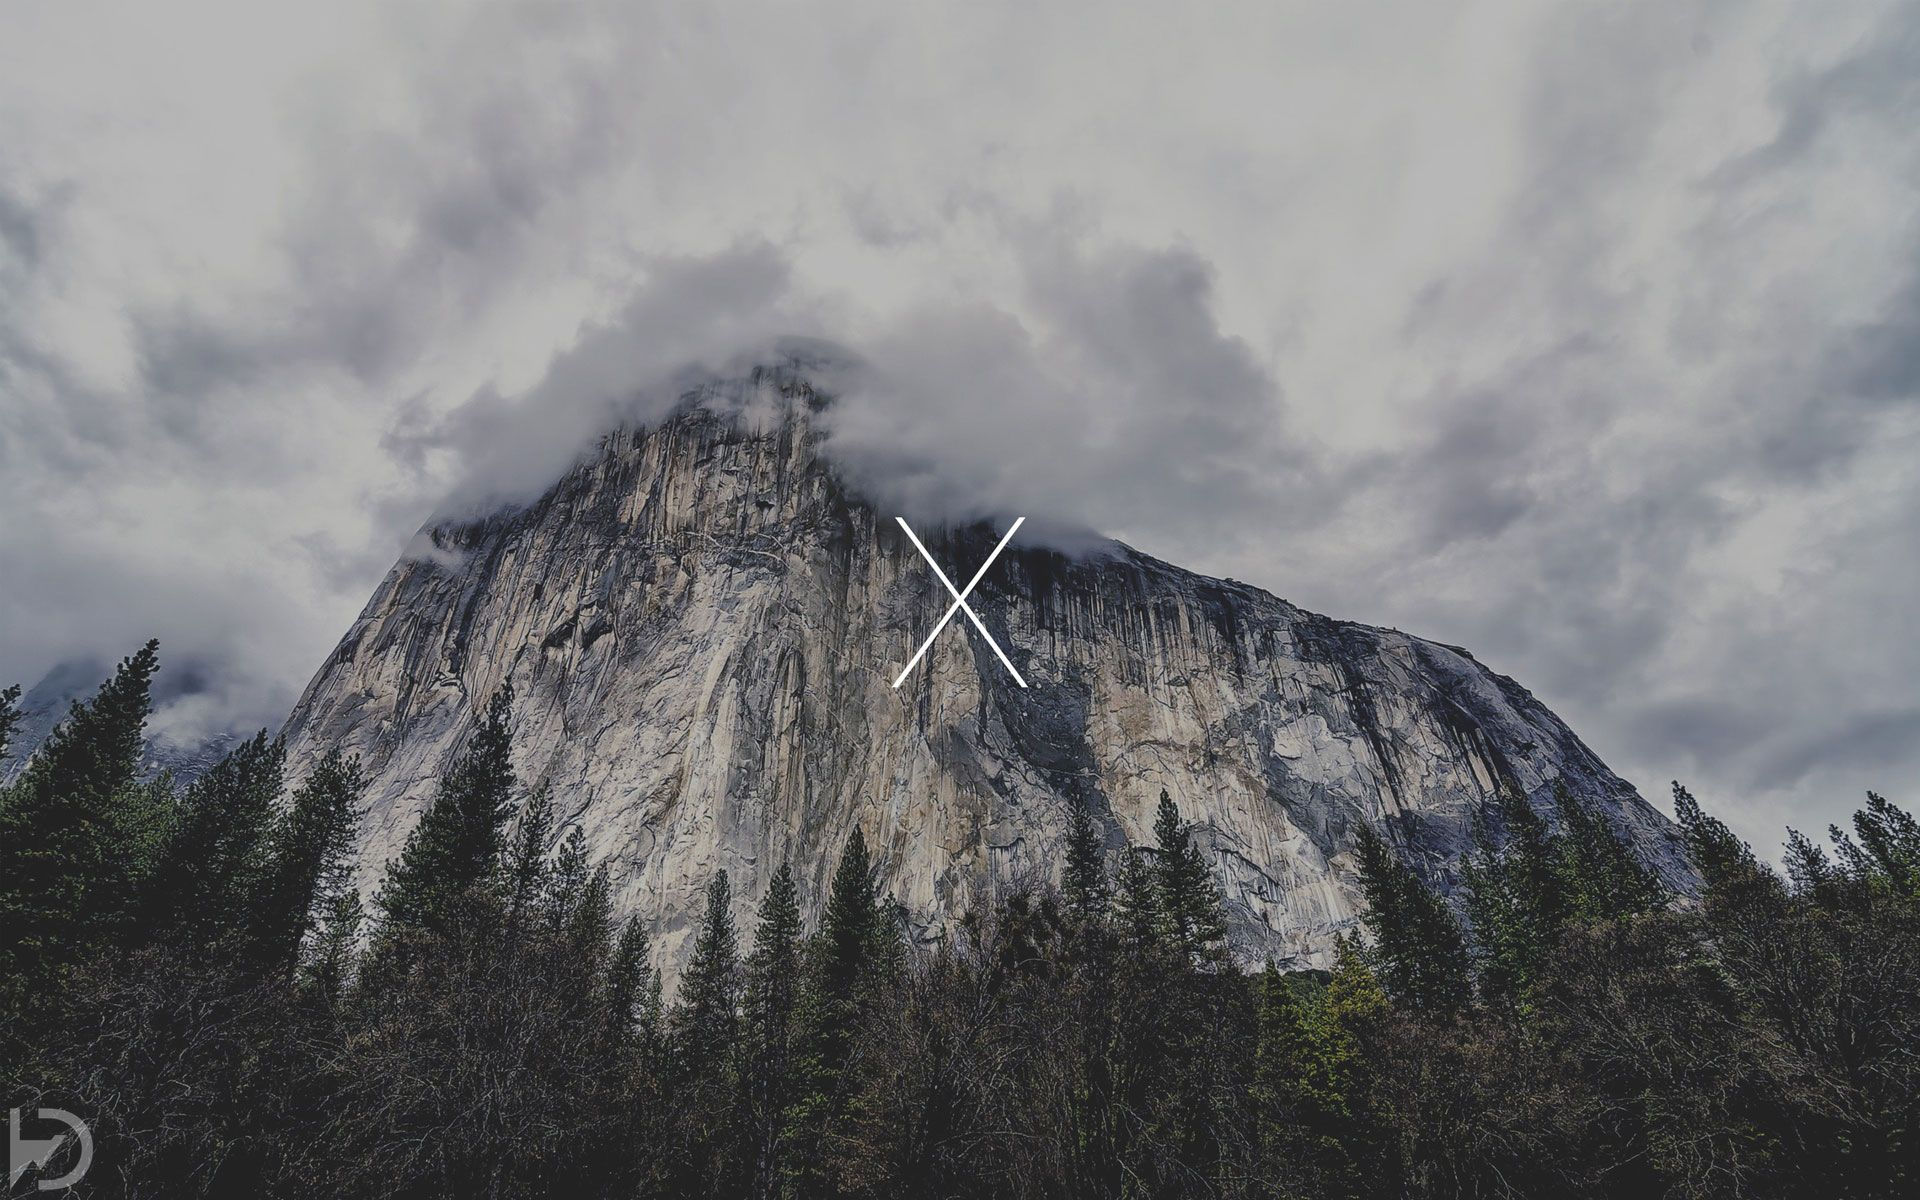 os x yosemite wallpaper hd - wallpapersafari | free wallpapers